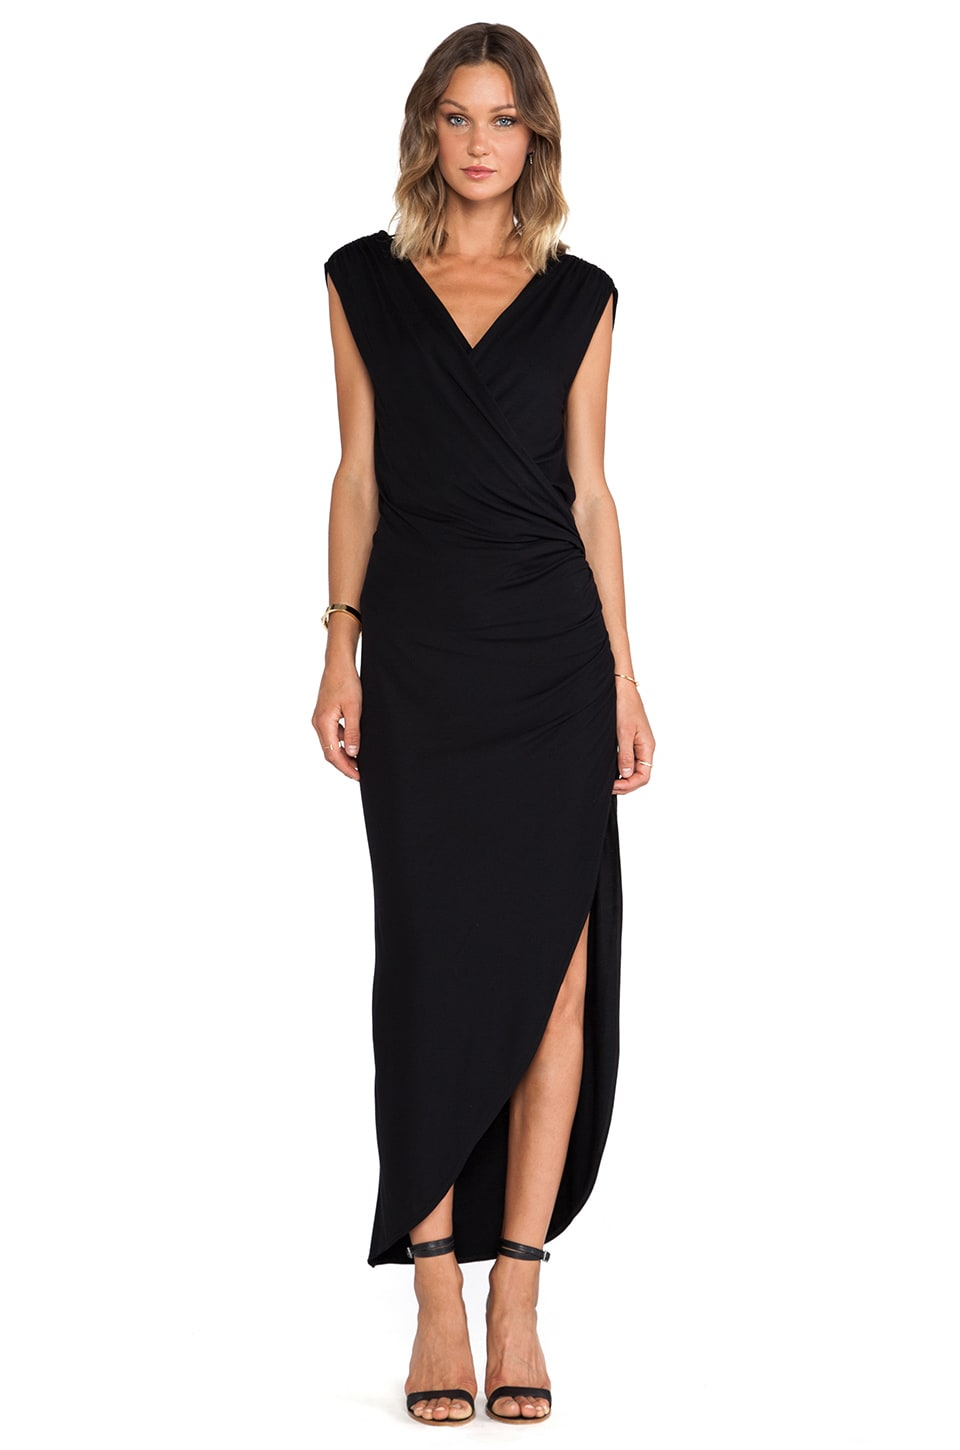 Haute Hippie Asym Dort Dress in Black